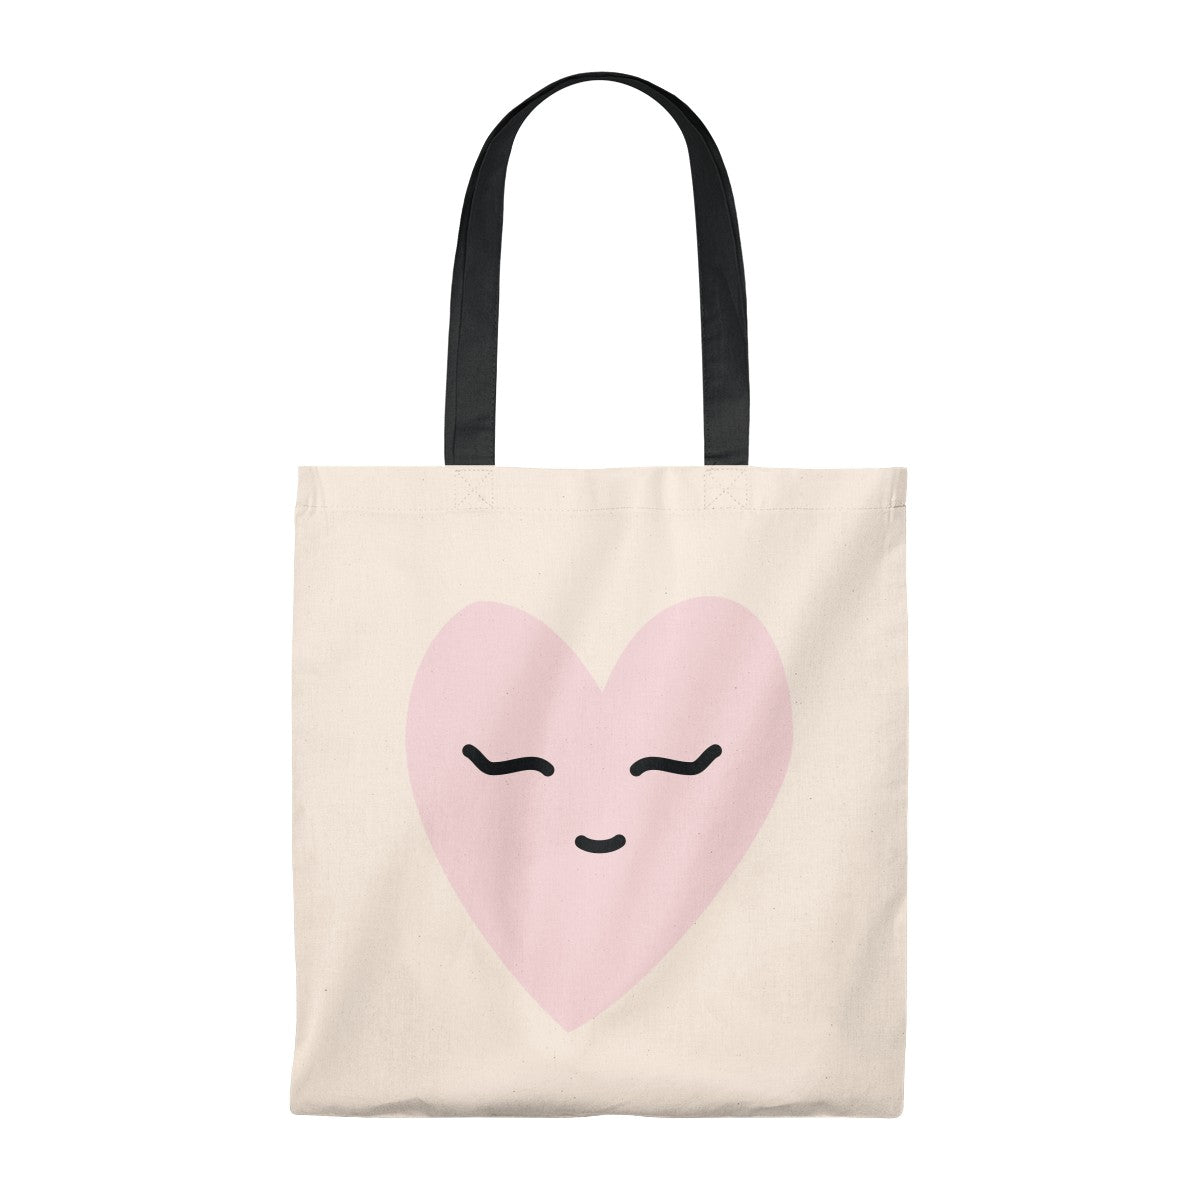 Love – Tote Bag (Vintage)